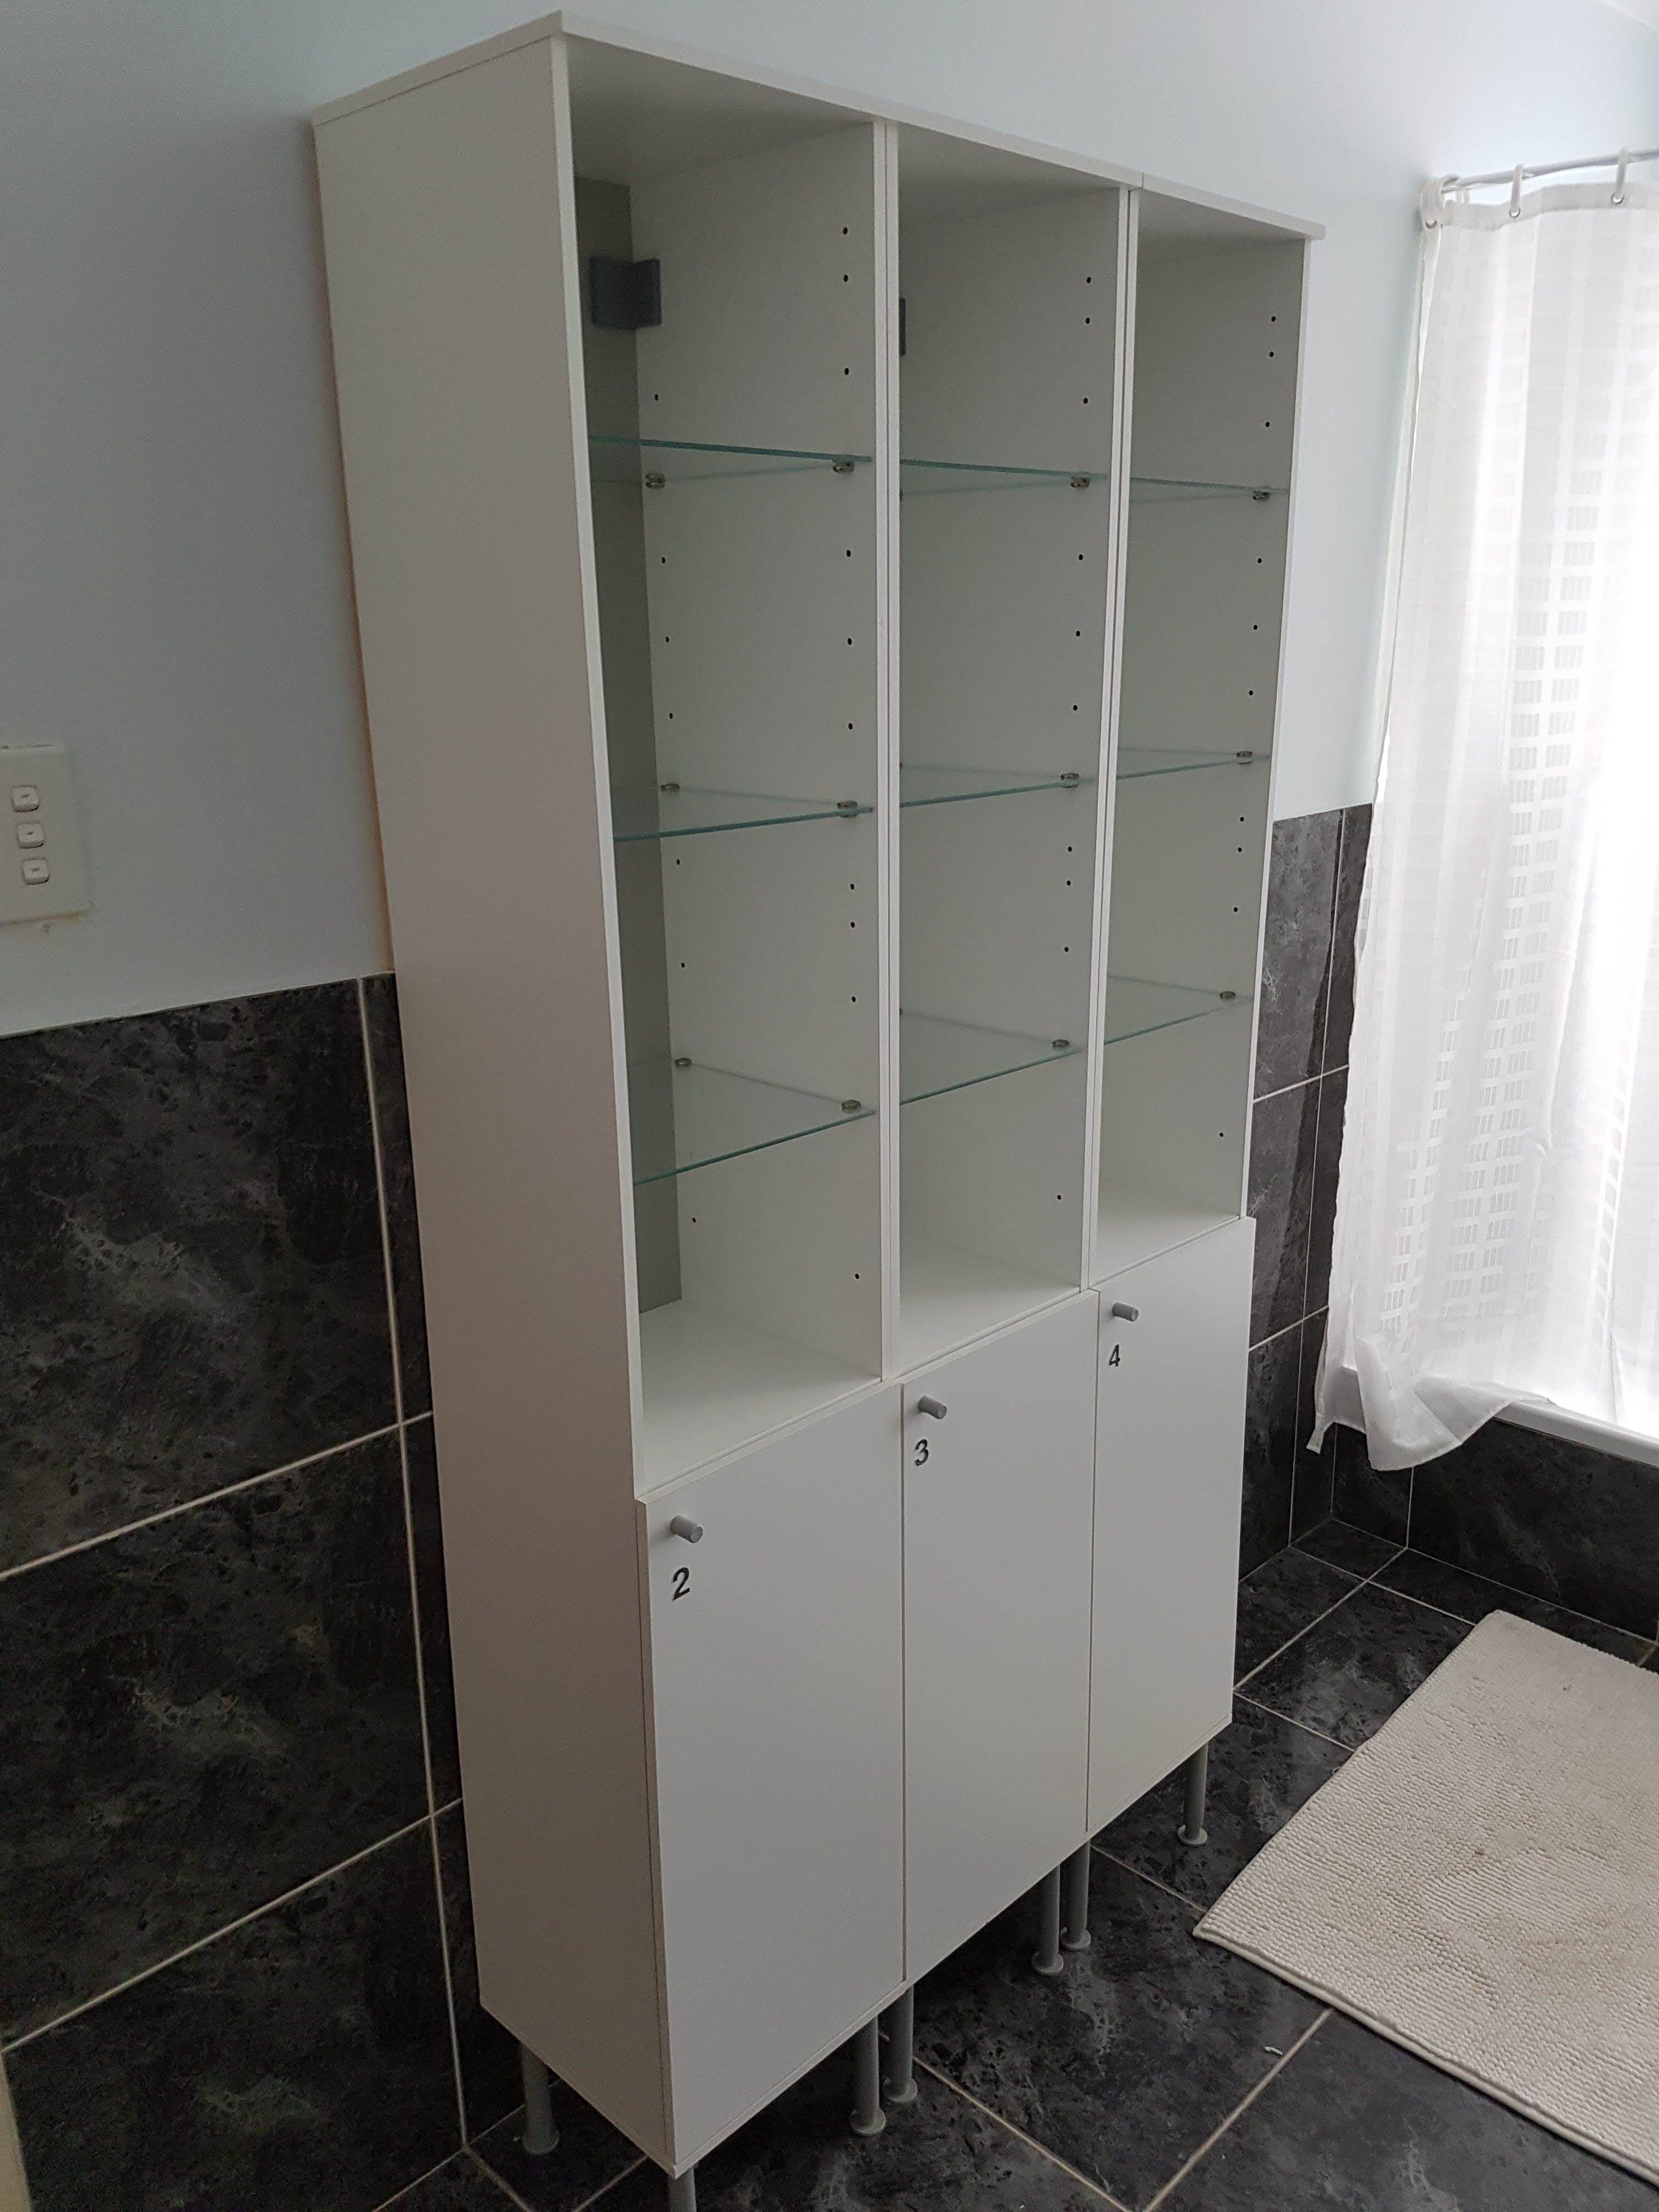 Private shelving and cabinets in shared bathroom